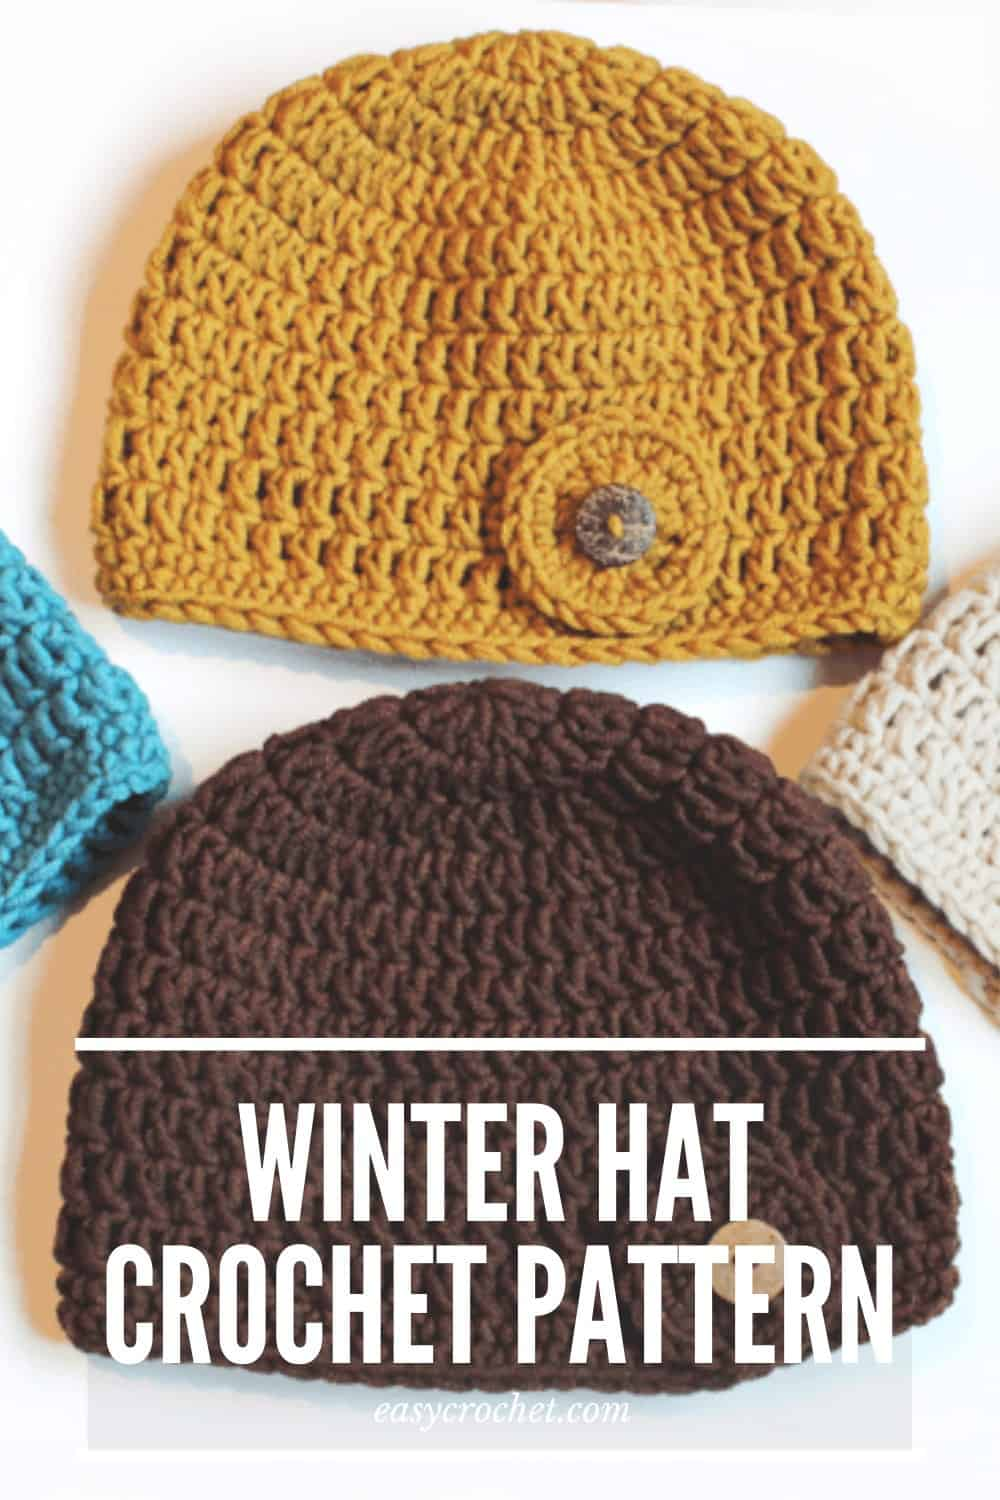 Free Crochet Hat Pattern for Women using only the double crochet from Easy Crochet via @easycrochetcom